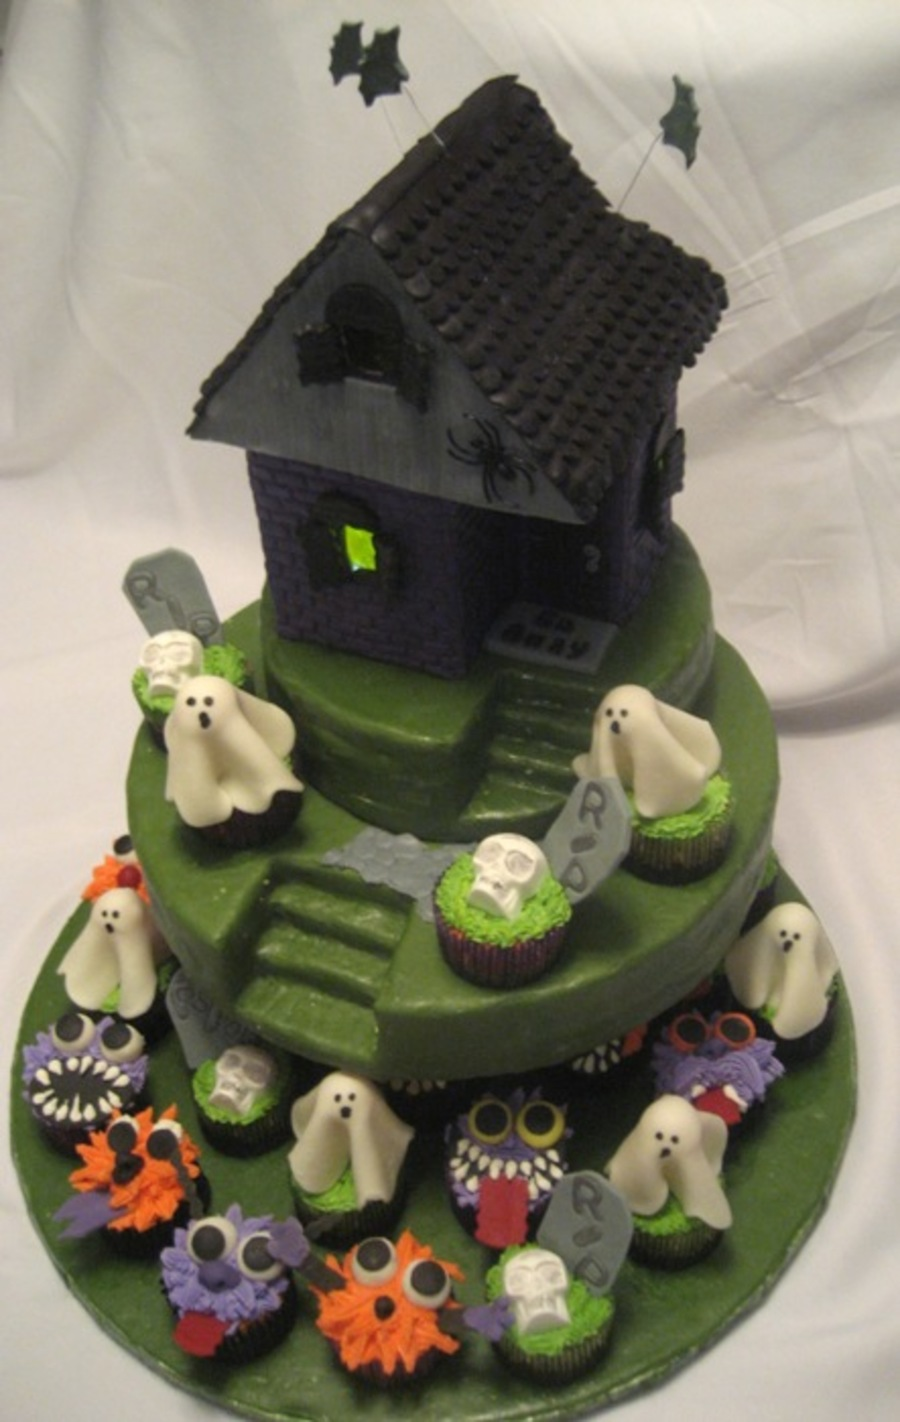 Haunted House With Spooky Cupcakes on Cake Central